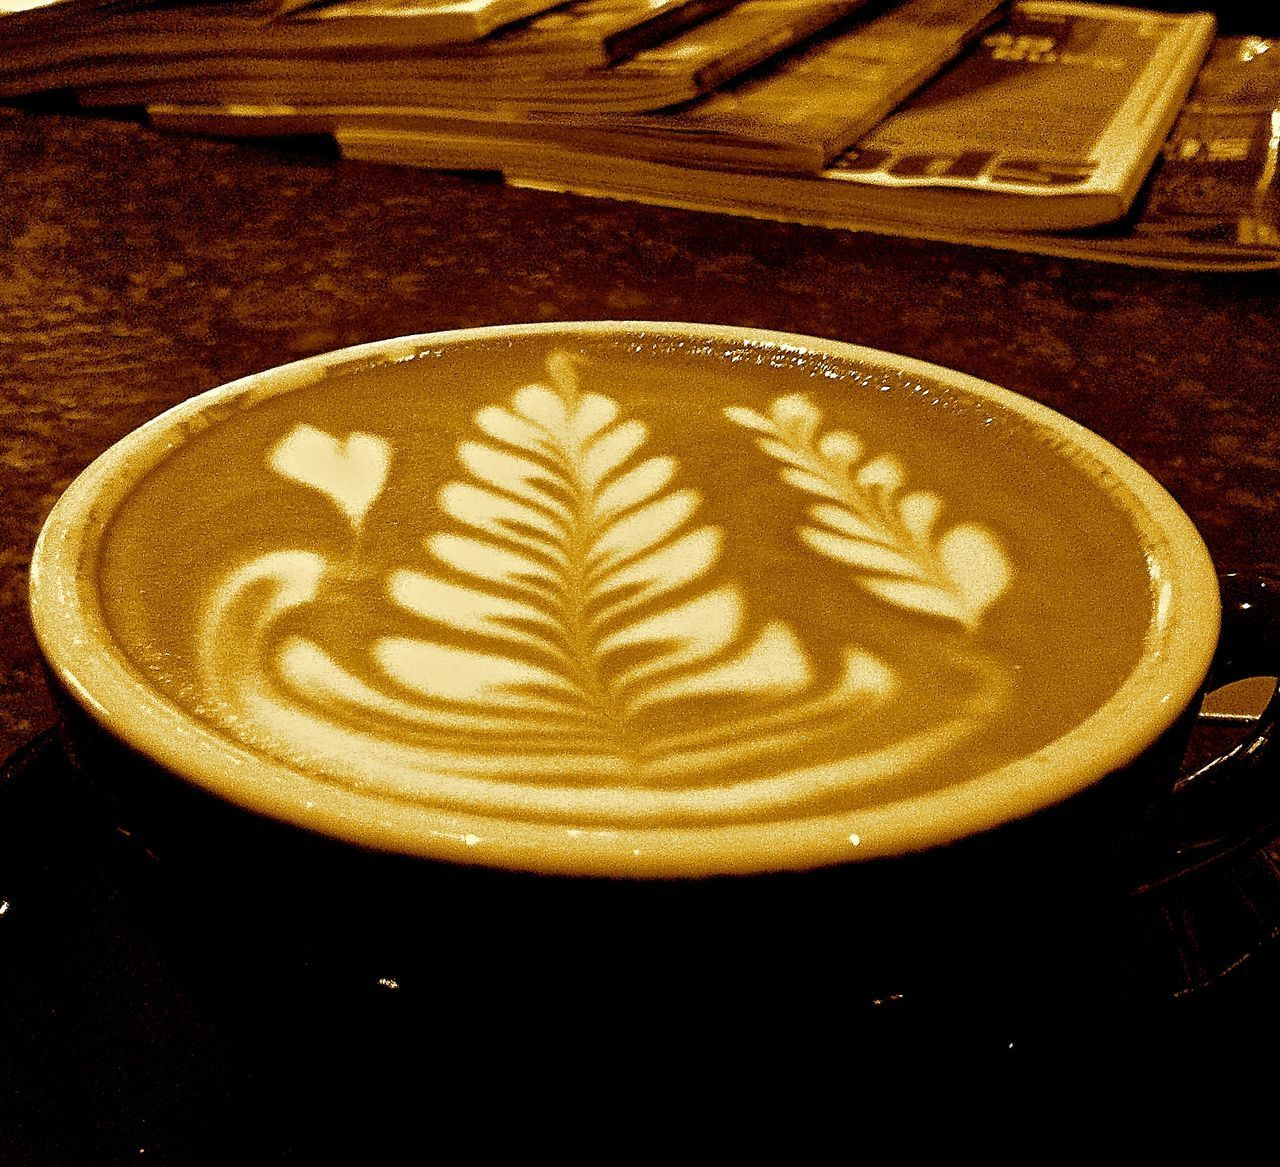 Cafe Culture Cappuccino Close-up Coffee - Drink Coffee Culture Coffee Cup Drink Food Food And Drink Froth Art Frothy Drink Heart Heart Shape Hidden Love Indoors  Latte Love No People Quiet Moments Silent Moment